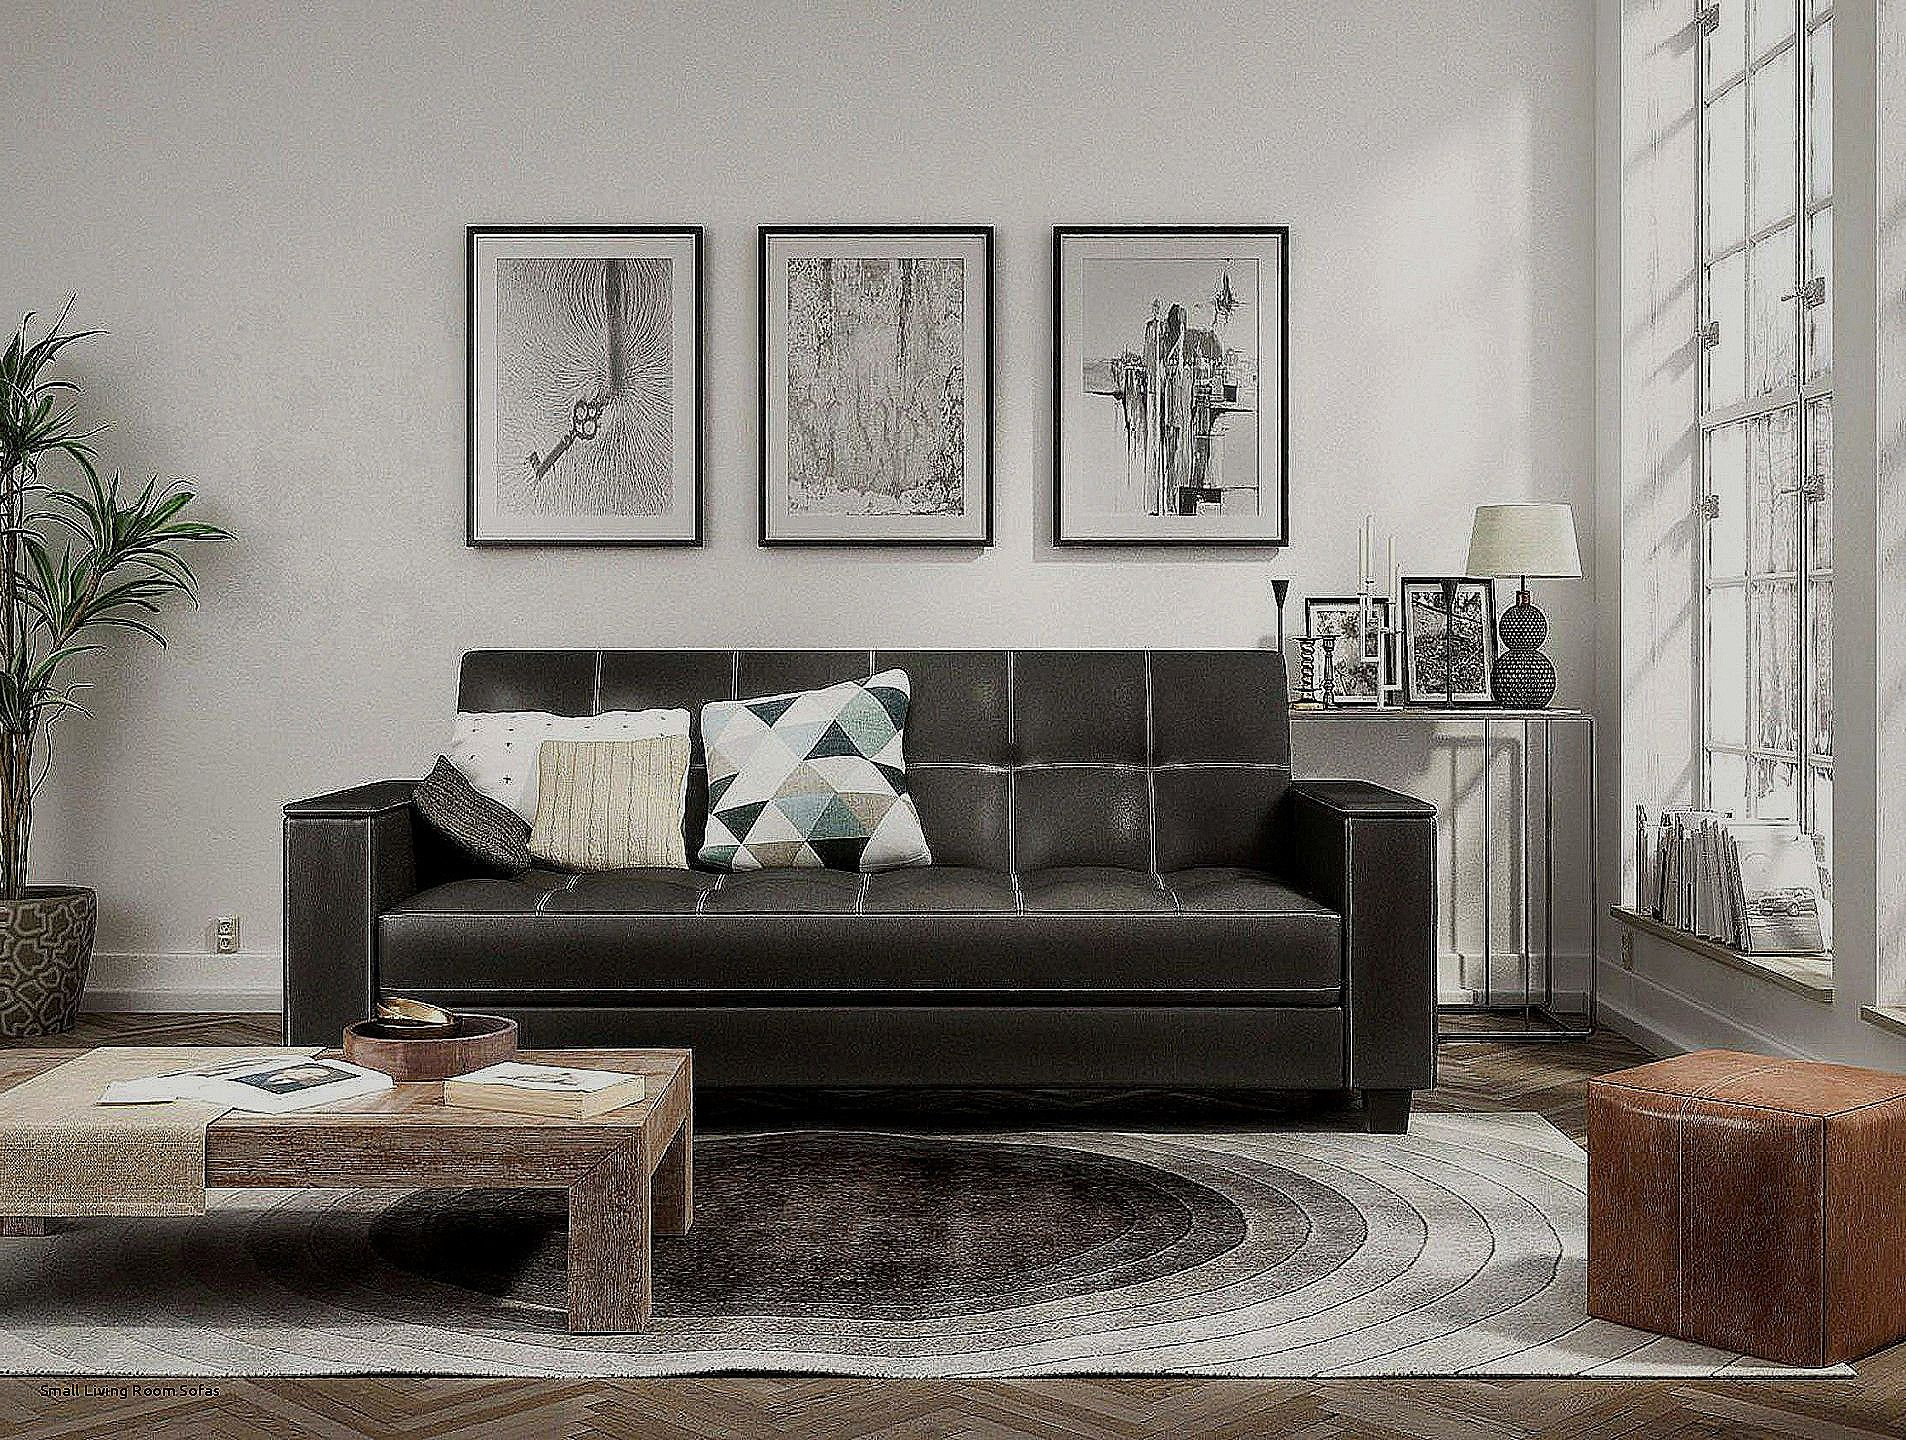 Best Of Interior Design Ideas for the Living Room